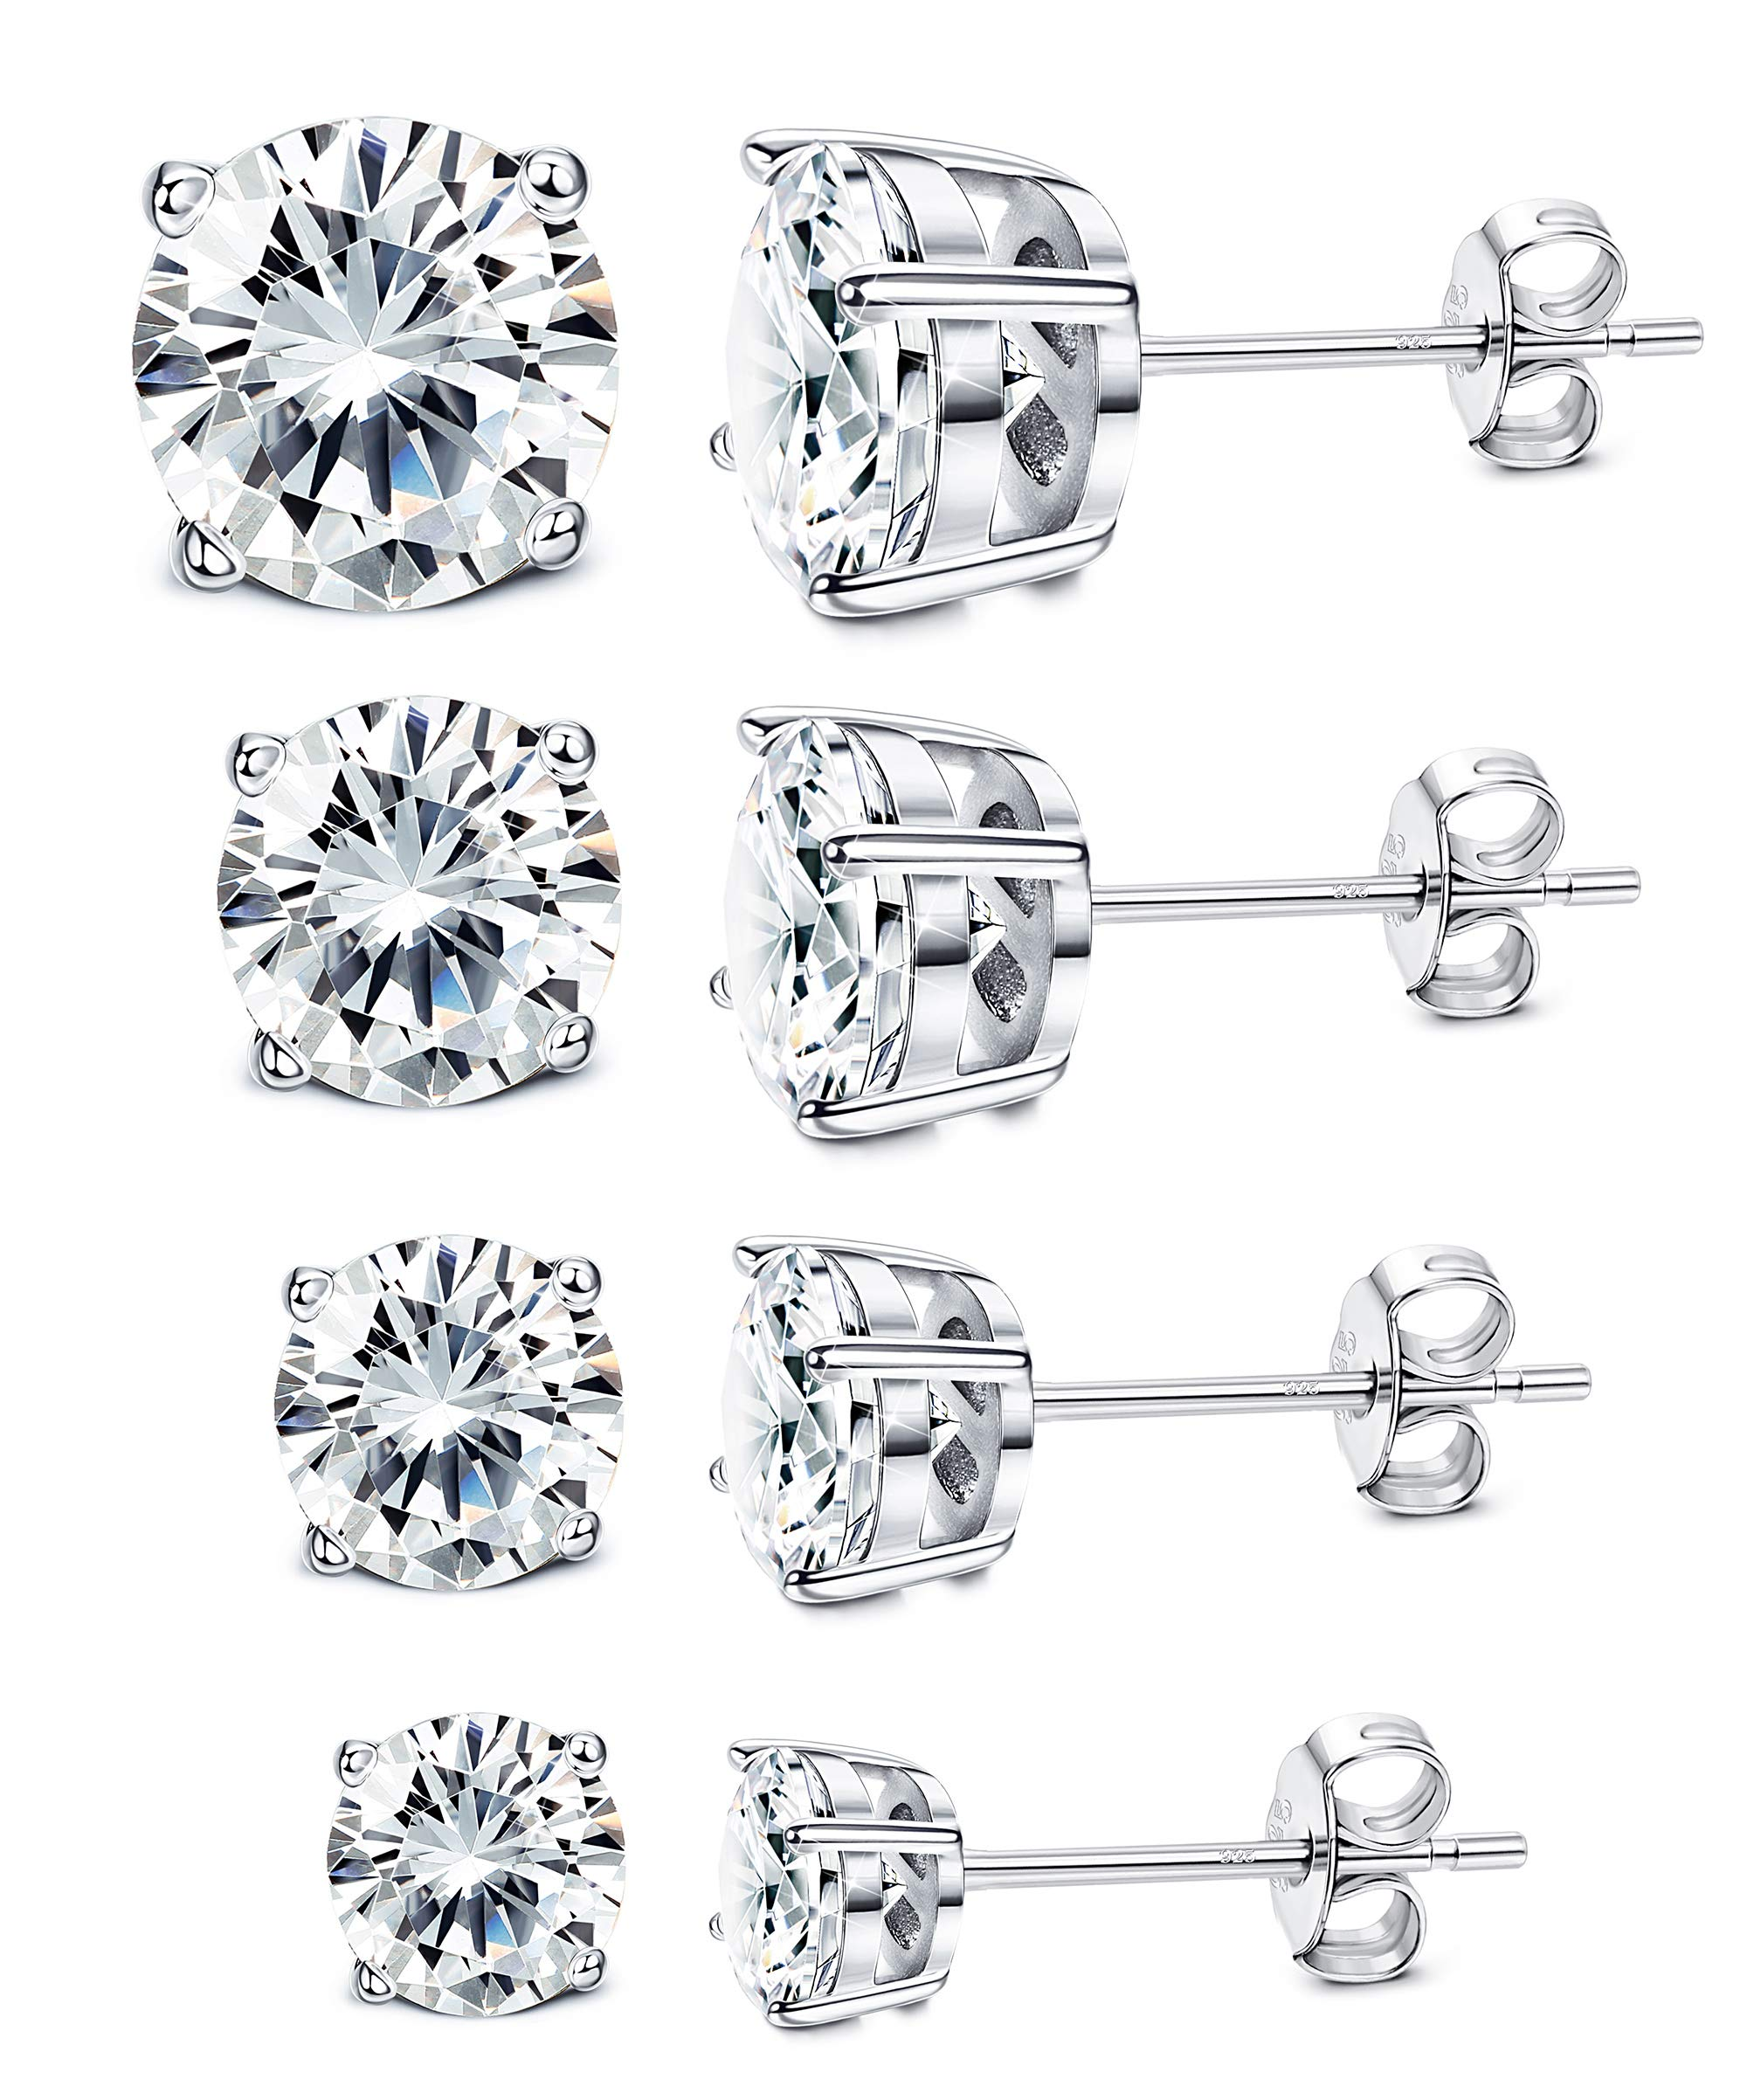 Milacolato 4 Pairs Sterling Silver Stud Earrings 18K White Gold Plated Round Cubic Zirconia Classic Basket Prong Set Earrings for Men Women 4-7mm